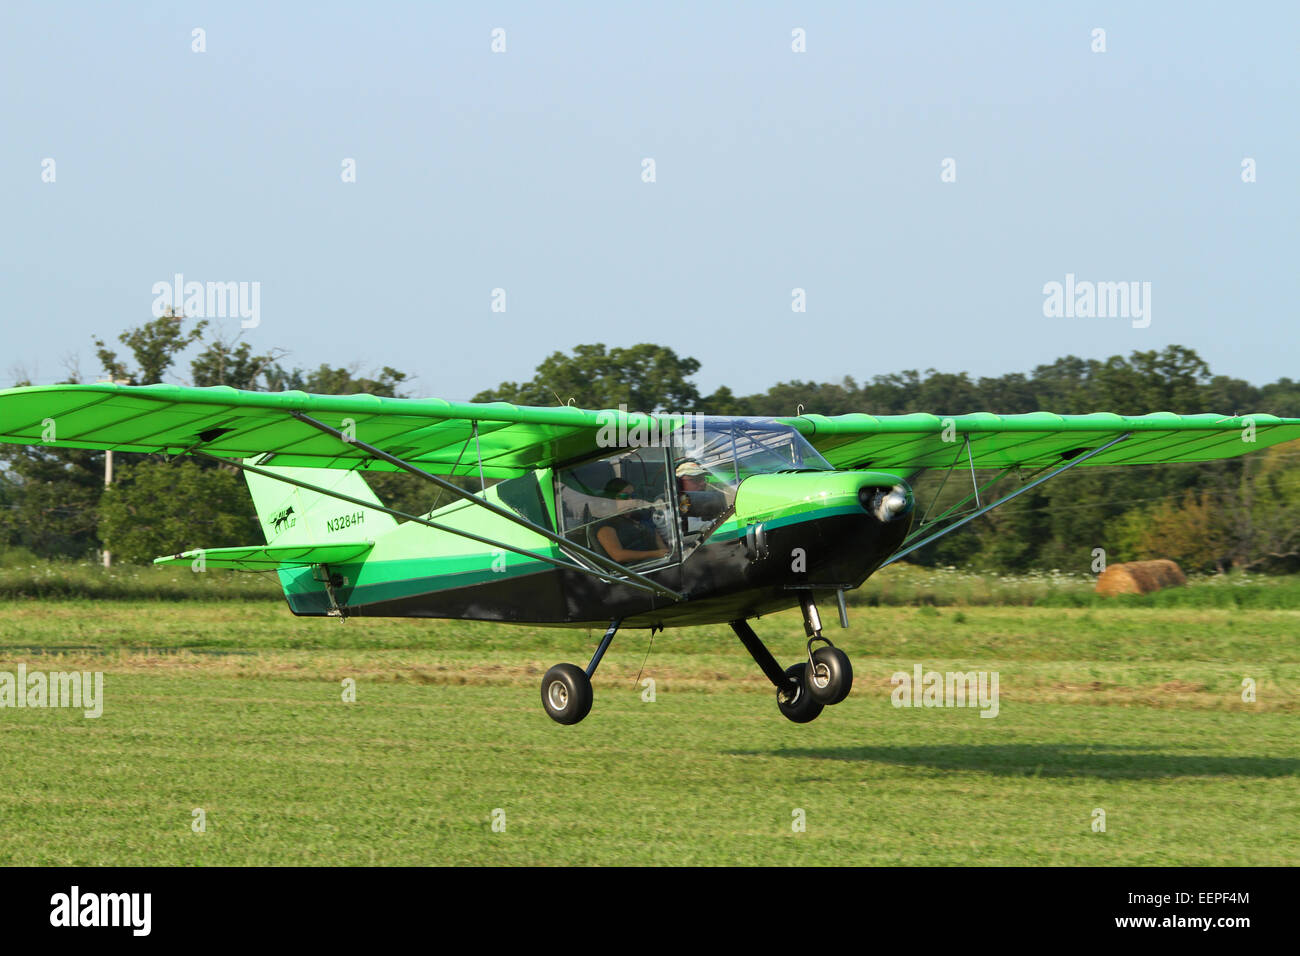 Fixed Wing Stock Photos & Fixed Wing Stock Images - Alamy